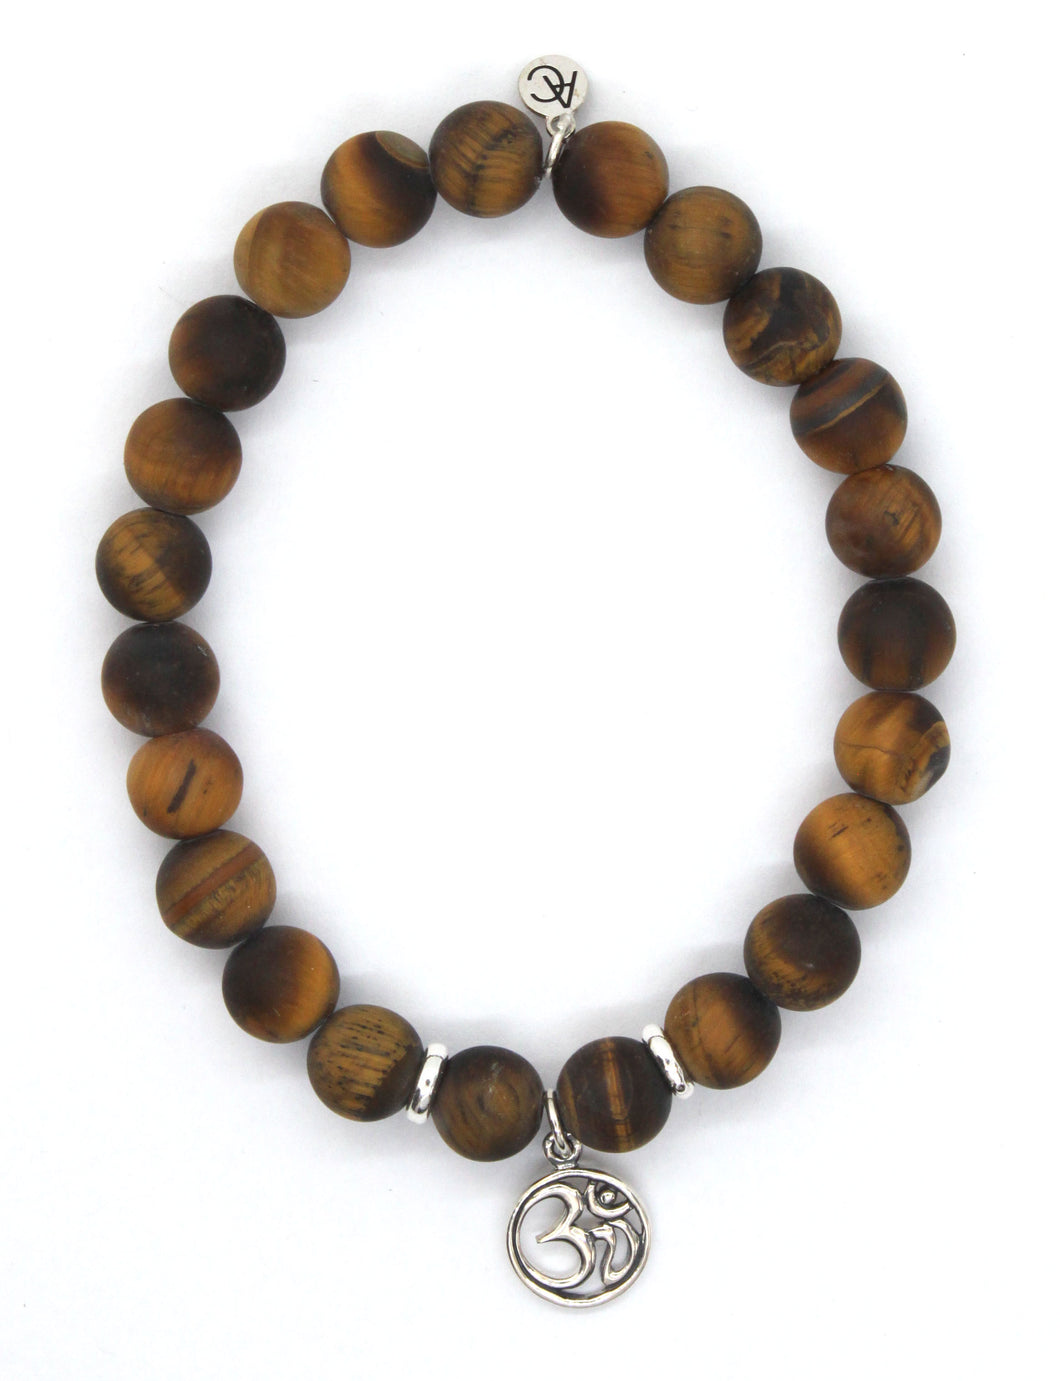 Tiger's Eye Stone Bracelet with Sterling Silver Om Charm